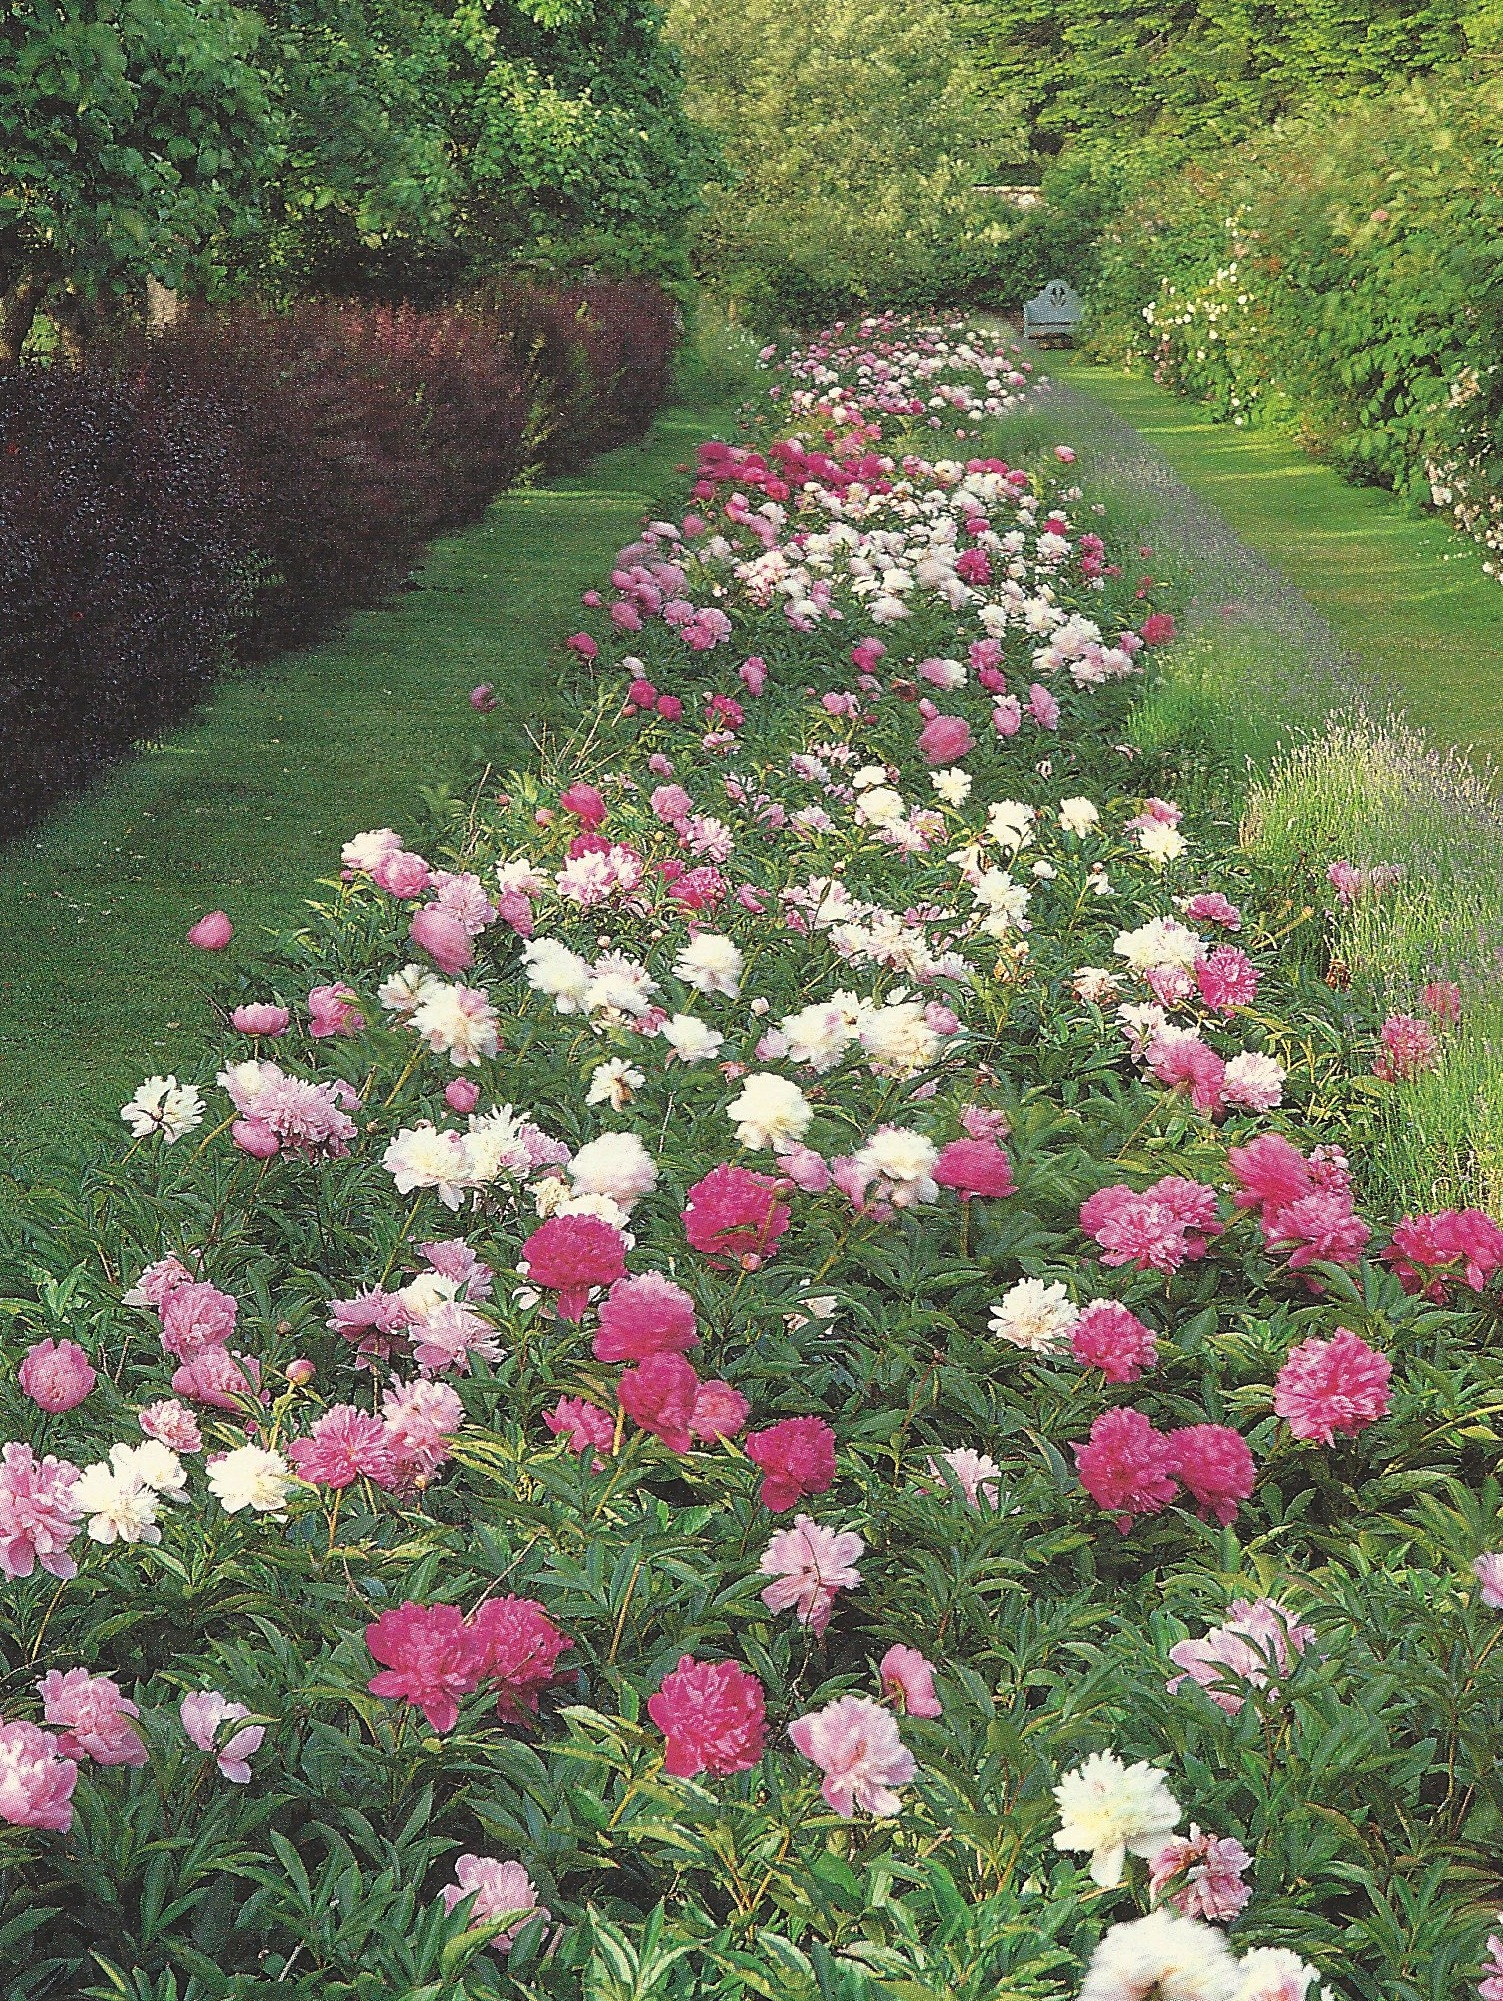 Landscape Design with Peonies | crickethillgarden on full sun garden design, rock garden design, vegetable garden design, formal garden design, butterfly garden design, english garden design, ground cover garden design, grass garden design, flower garden design, desert garden design, lawn garden design, deck design, patio design, fireplace design, living room design, cottage garden design, pergola design, rose garden design, border design, small garden design,